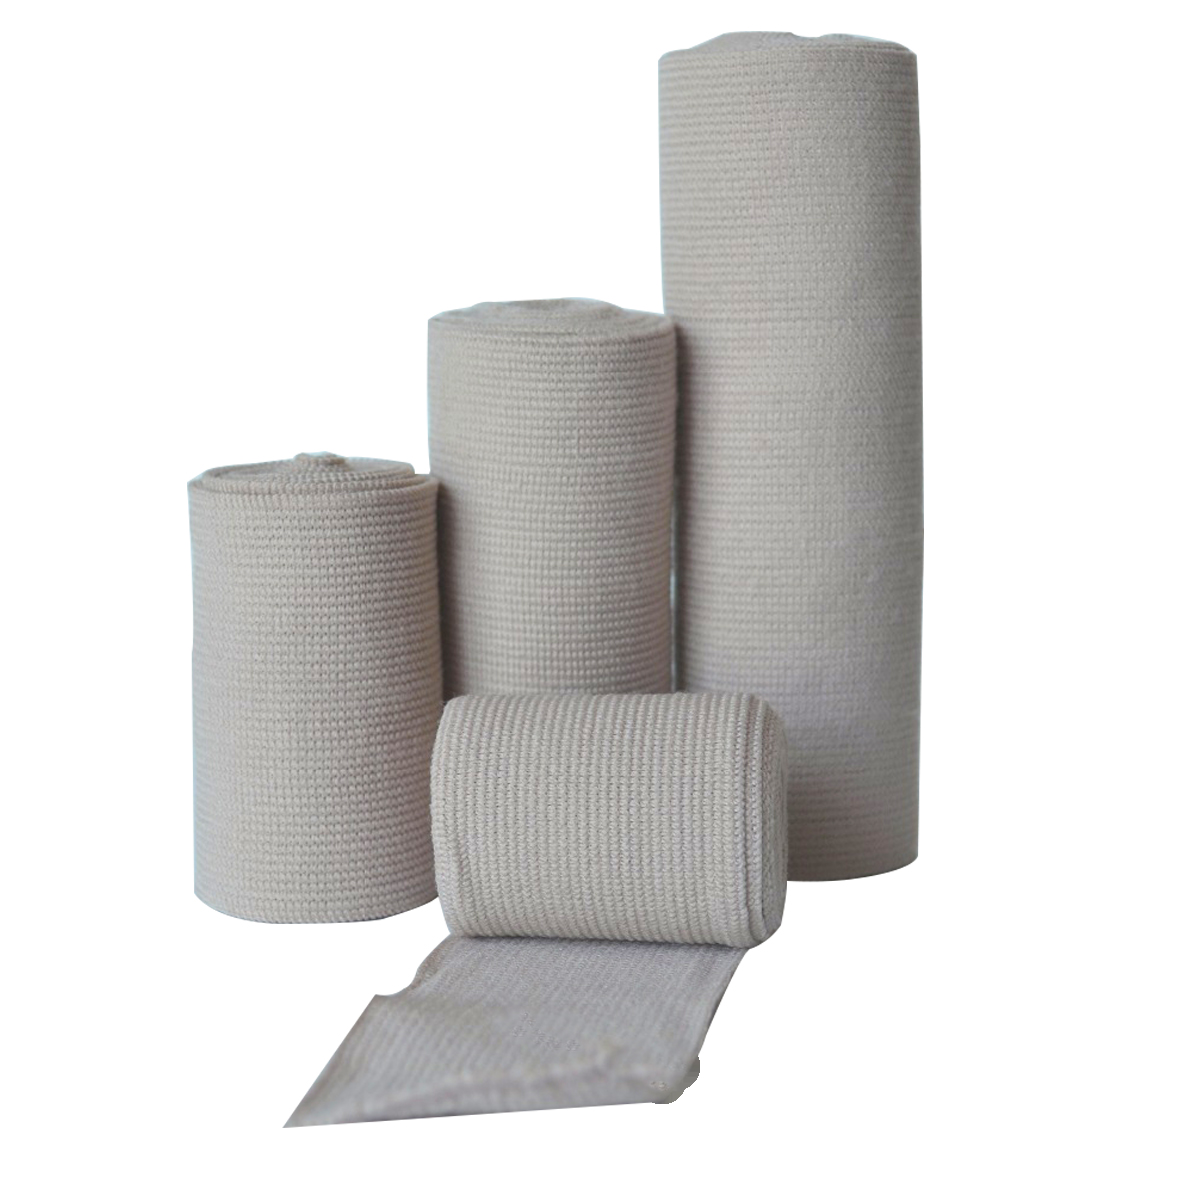 10Pcs X Elastic Bandage Medical First Aid Wound Breathe Dressing Fixed Multi Size By Med ...